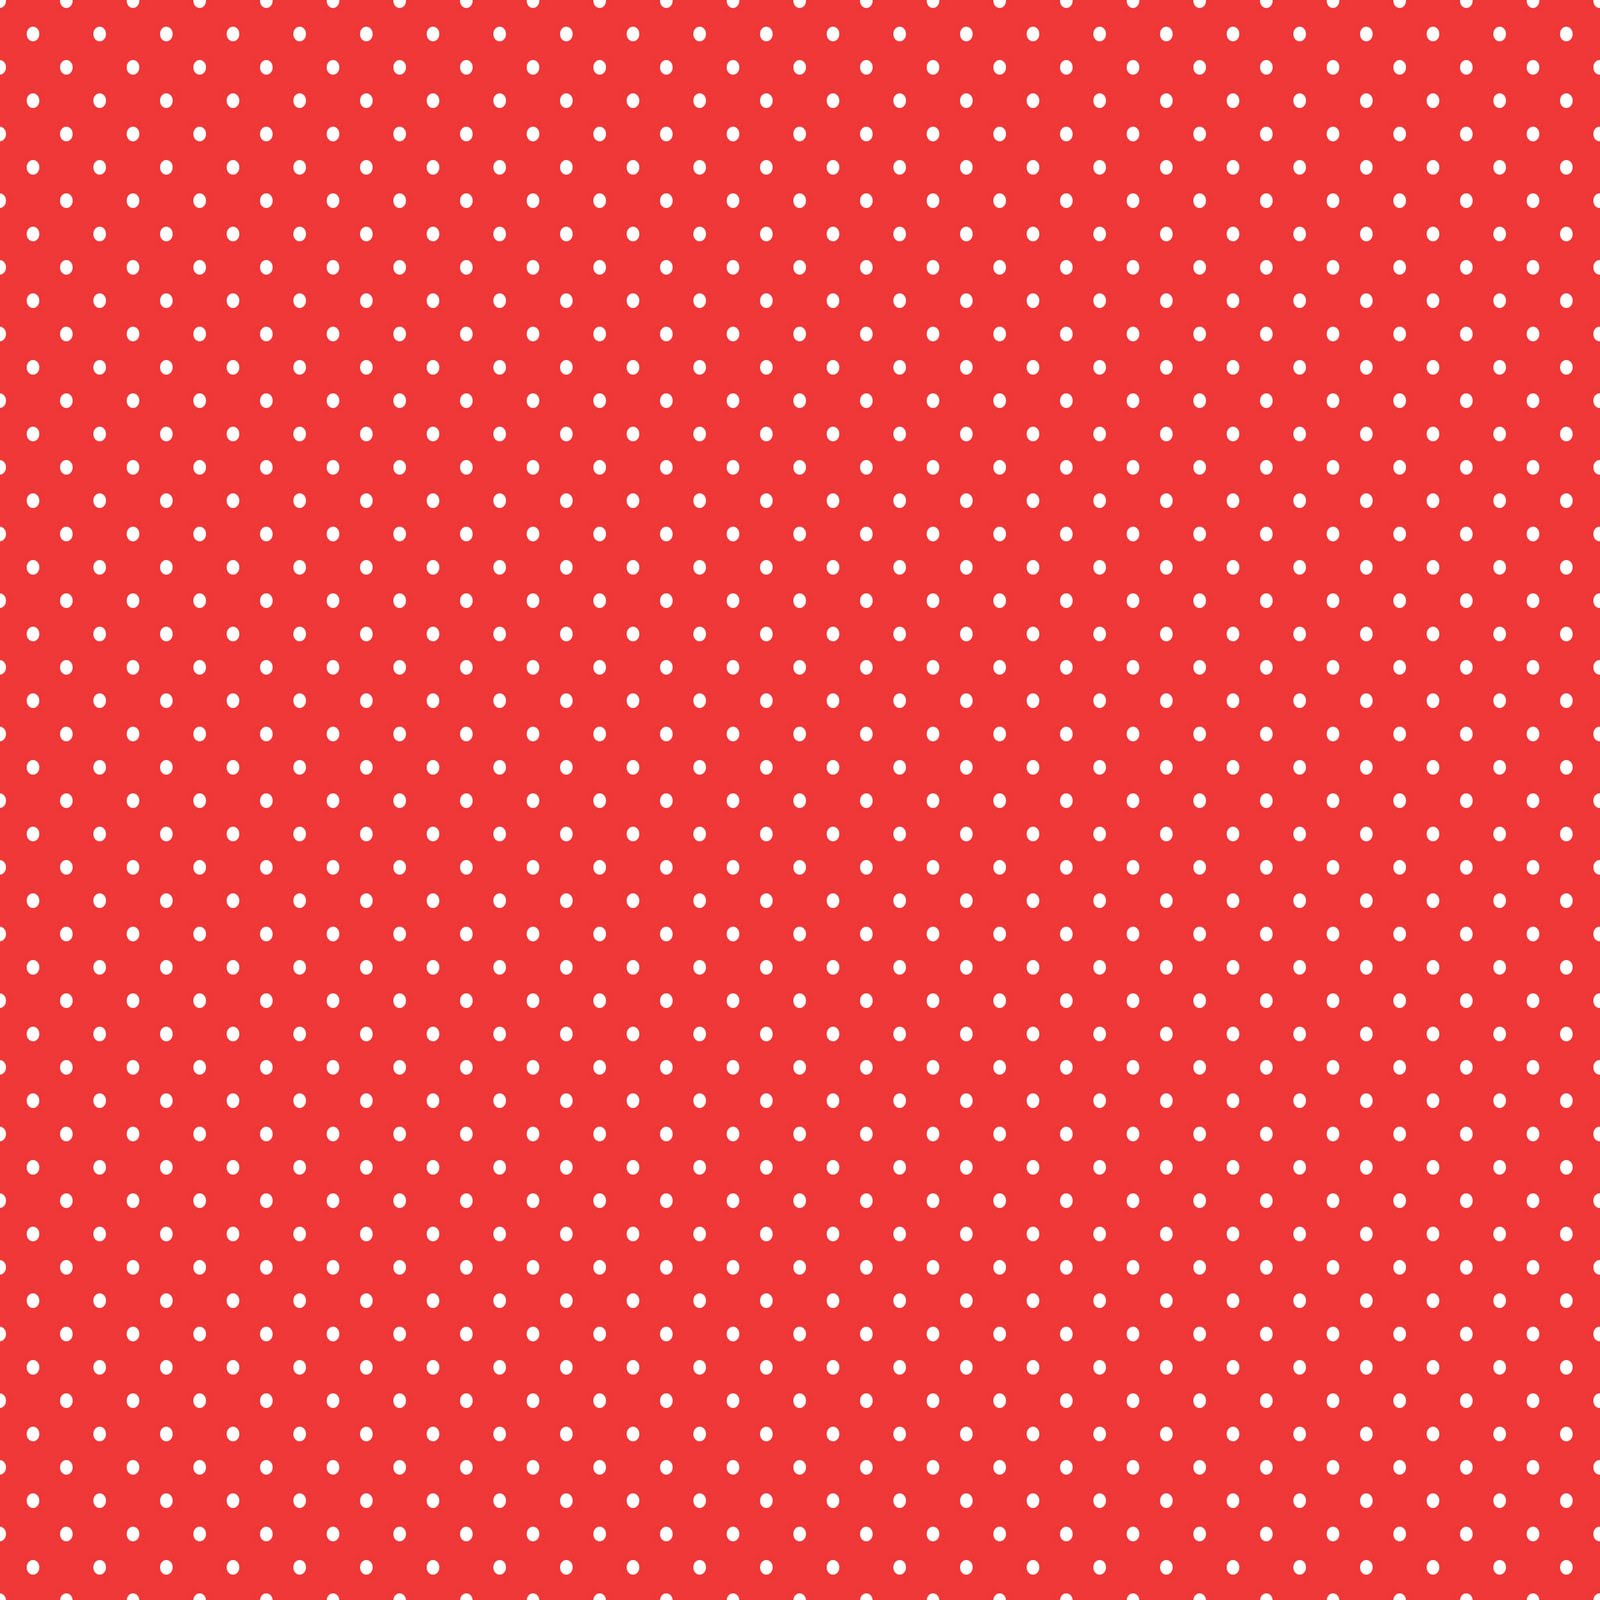 1600x1600 red and white polka dot wallpaper